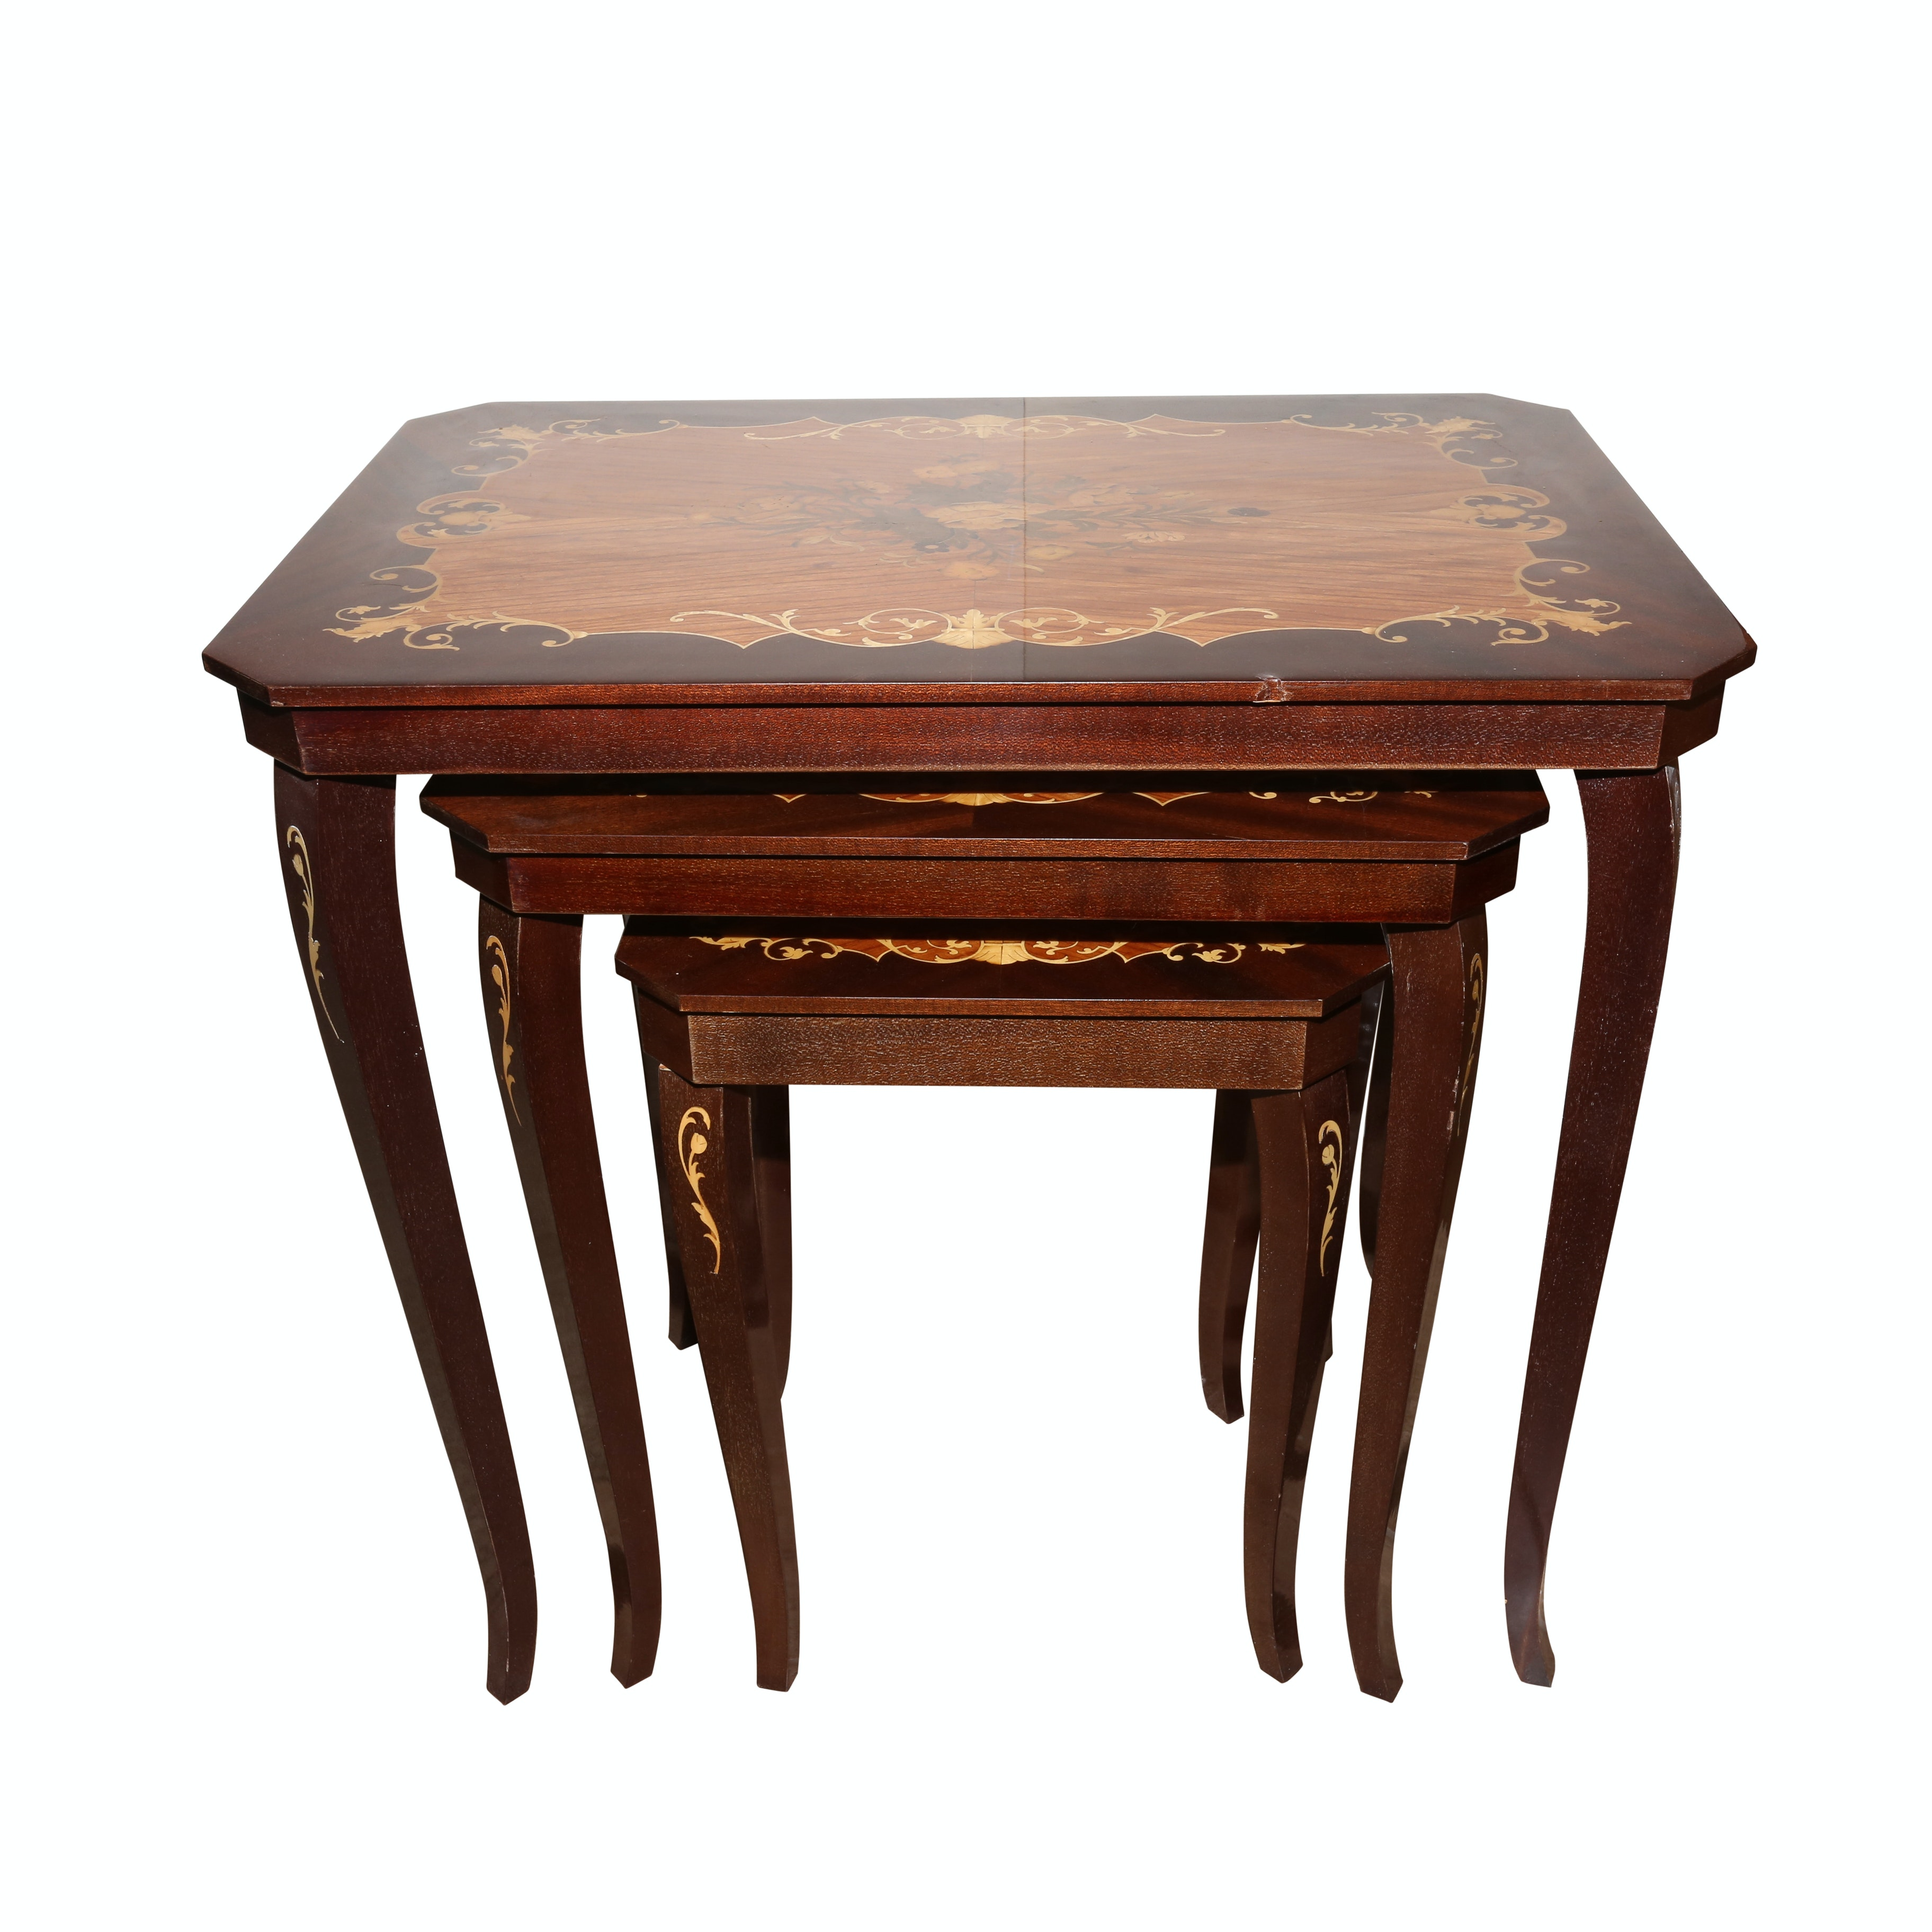 Italian Marquetry Style Nesting Tables